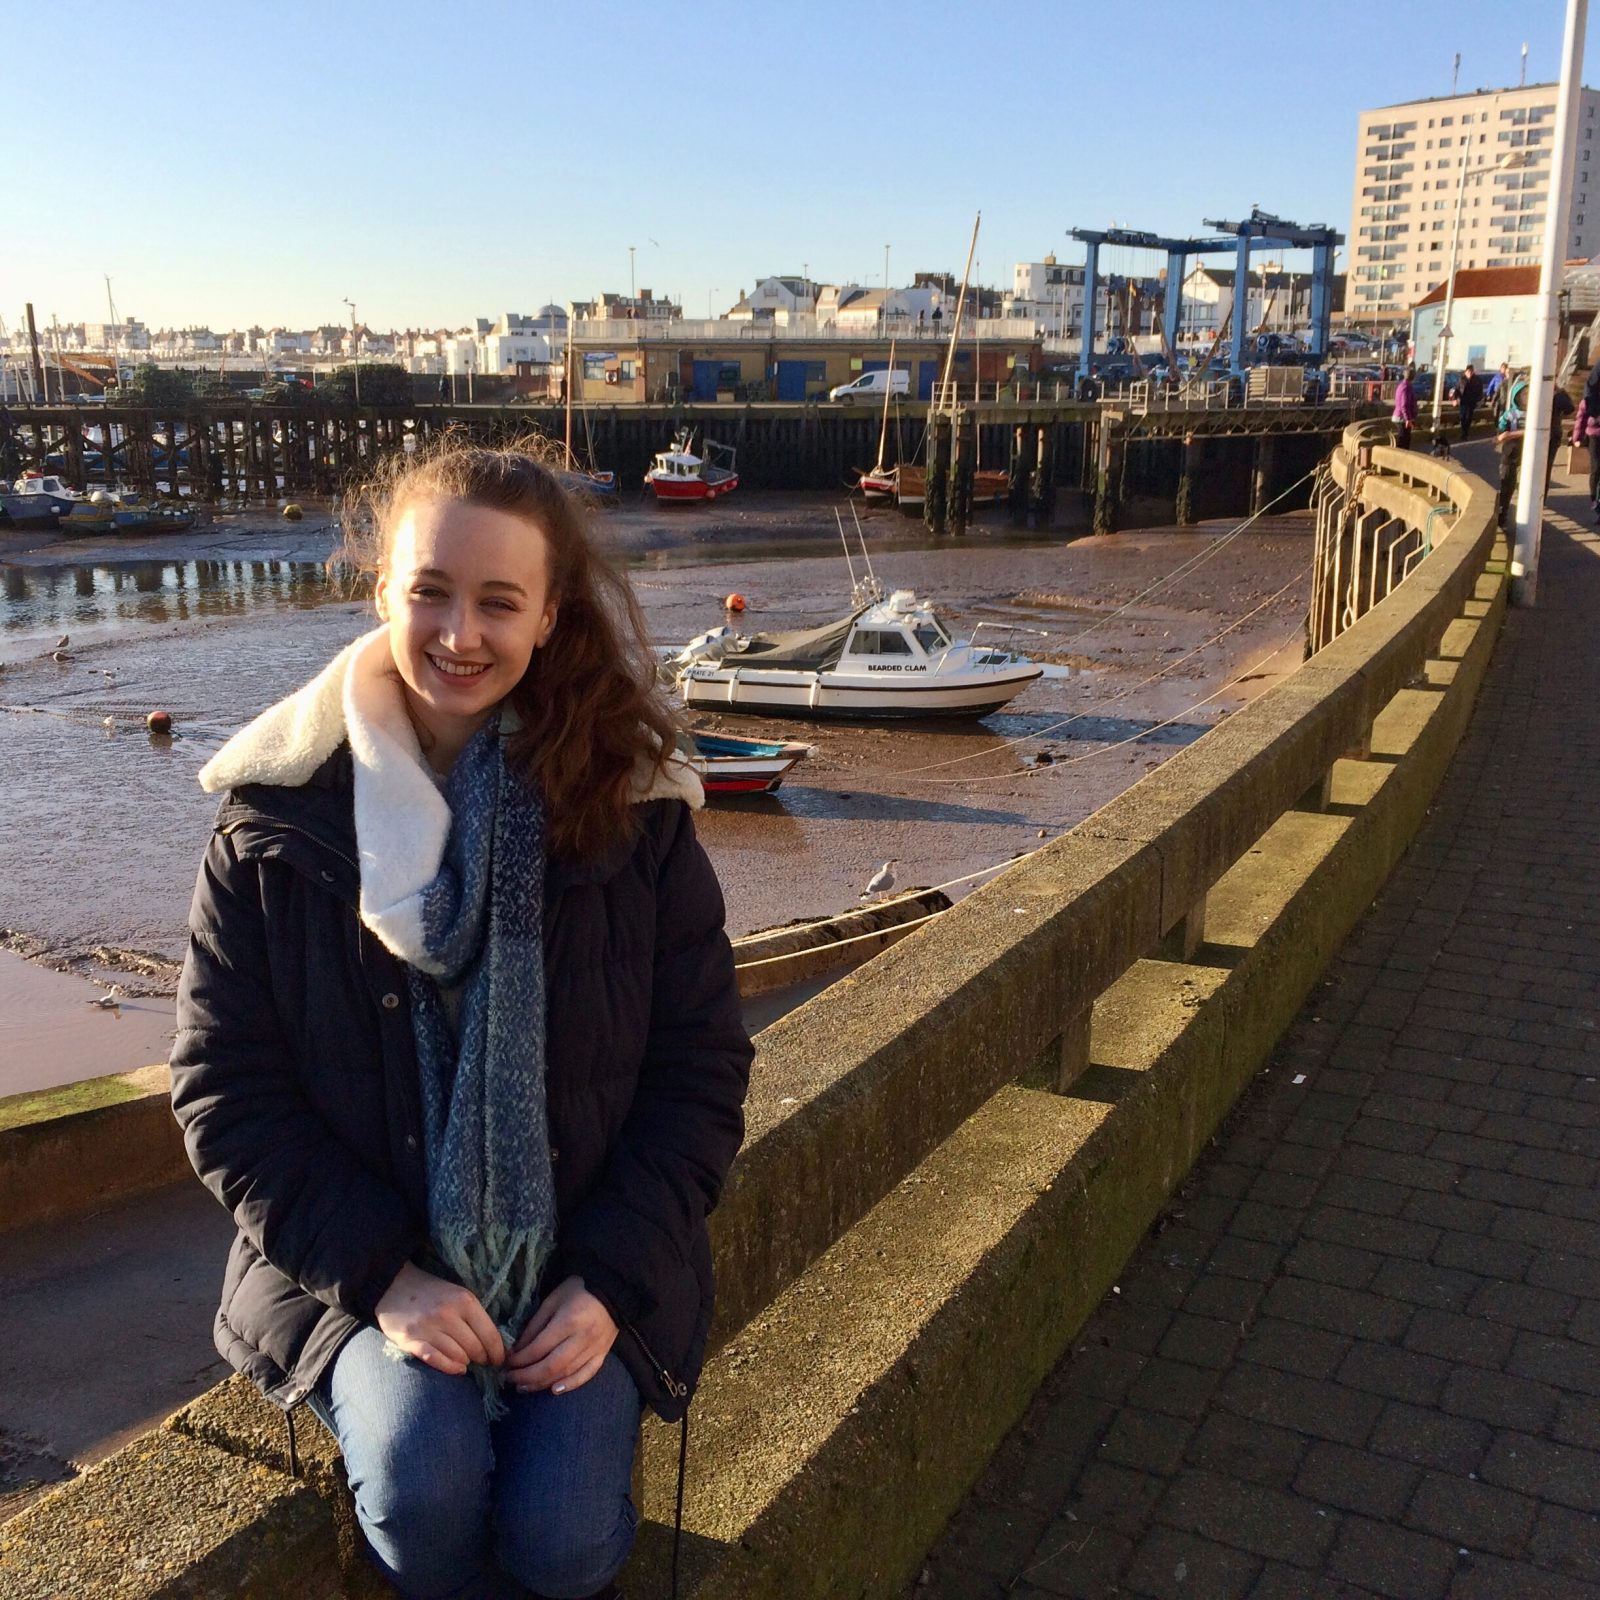 pippa sat outdoors wearing coat and scarf, harbour visible in background